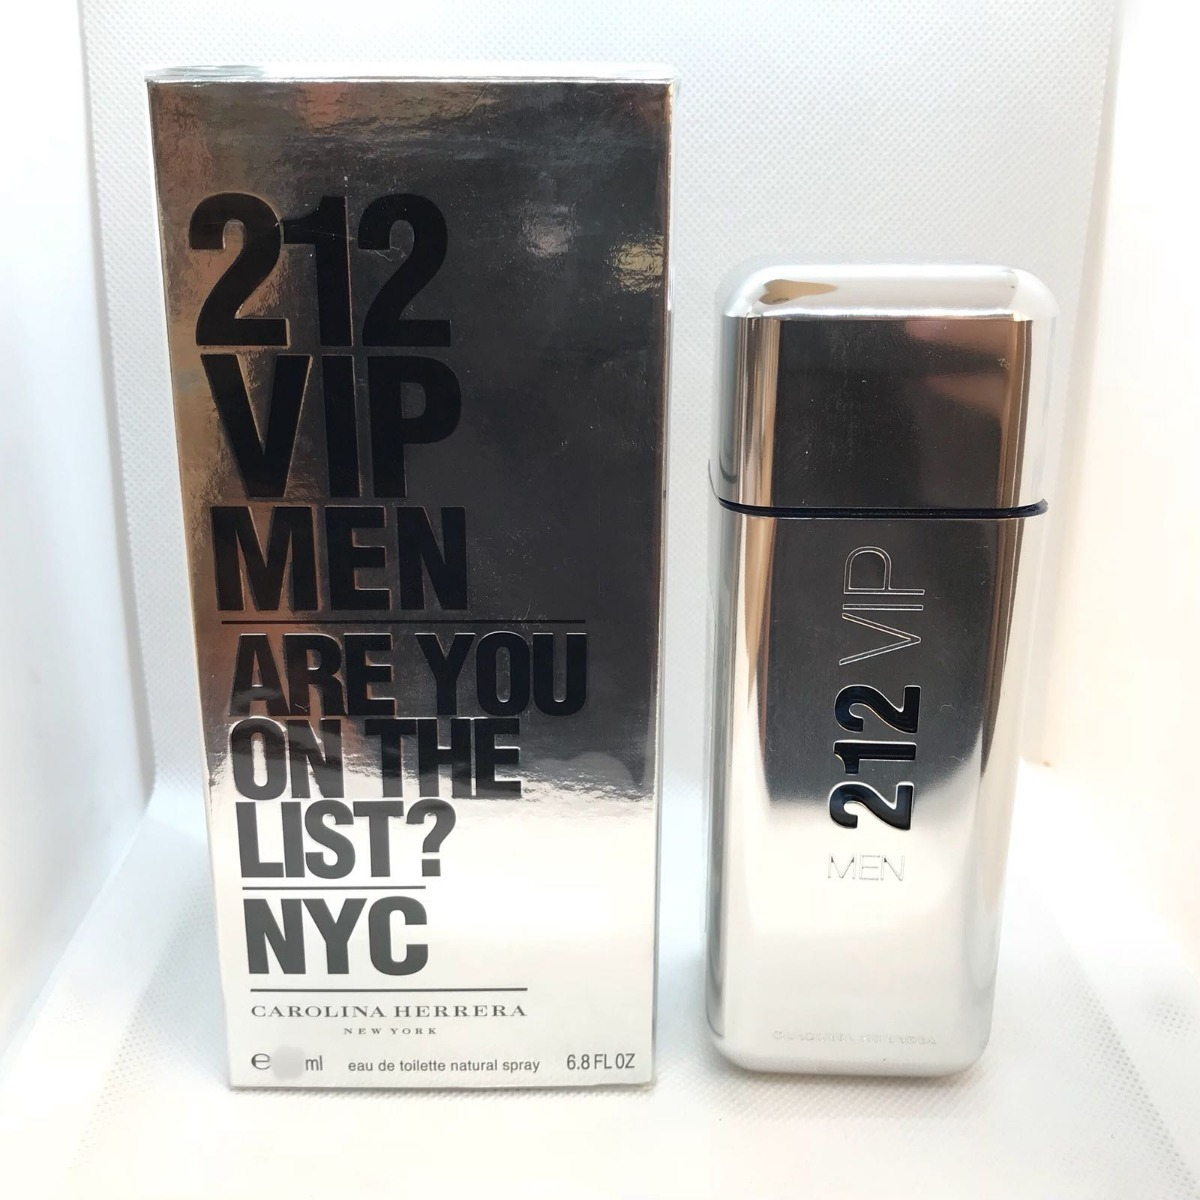 408e5749c 212 vip men carolina herrera masculino eau de toilette 100ml. Carregando  zoom.